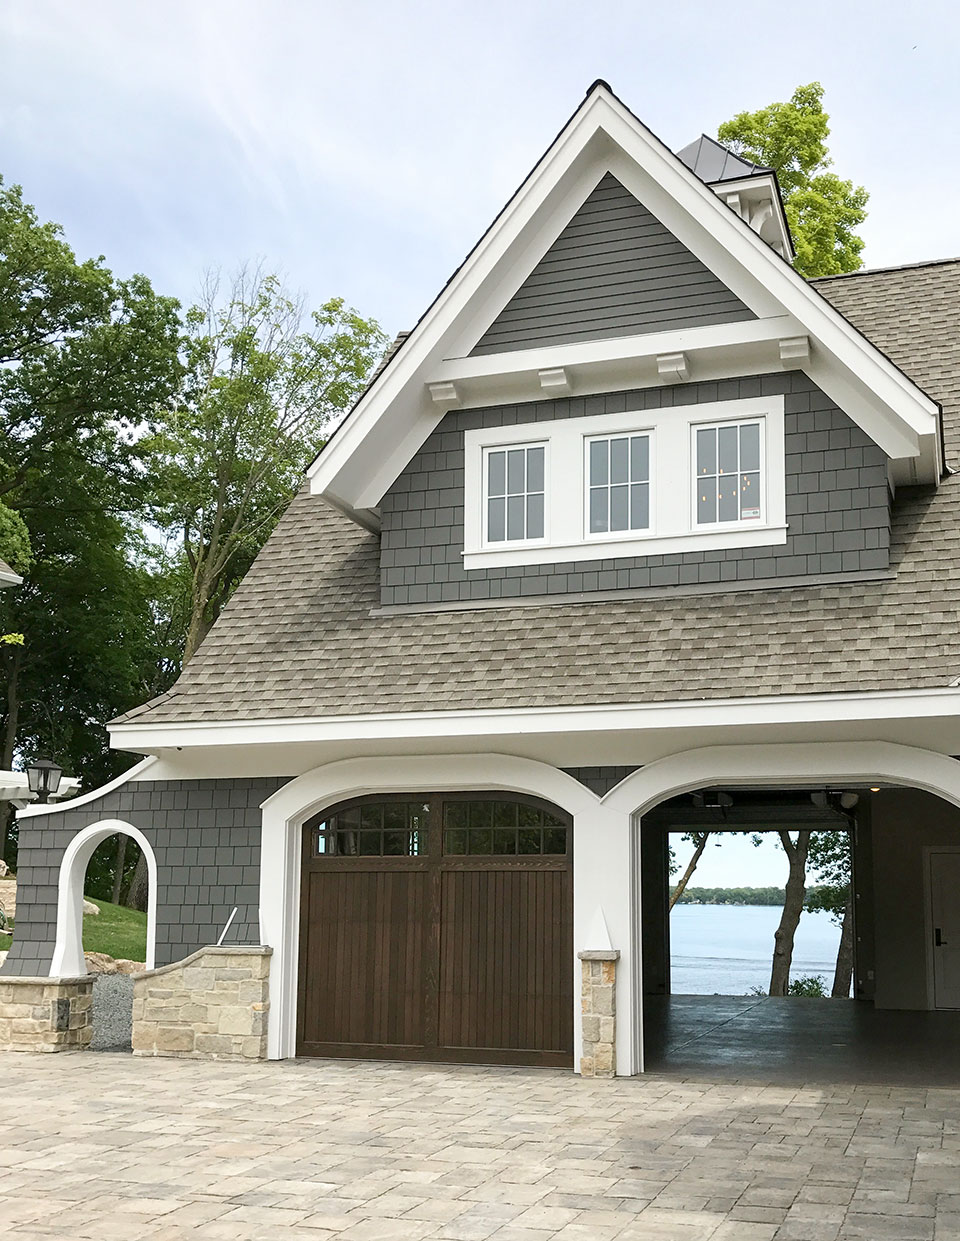 Artisan home tour luxury lake cottage garage with a view